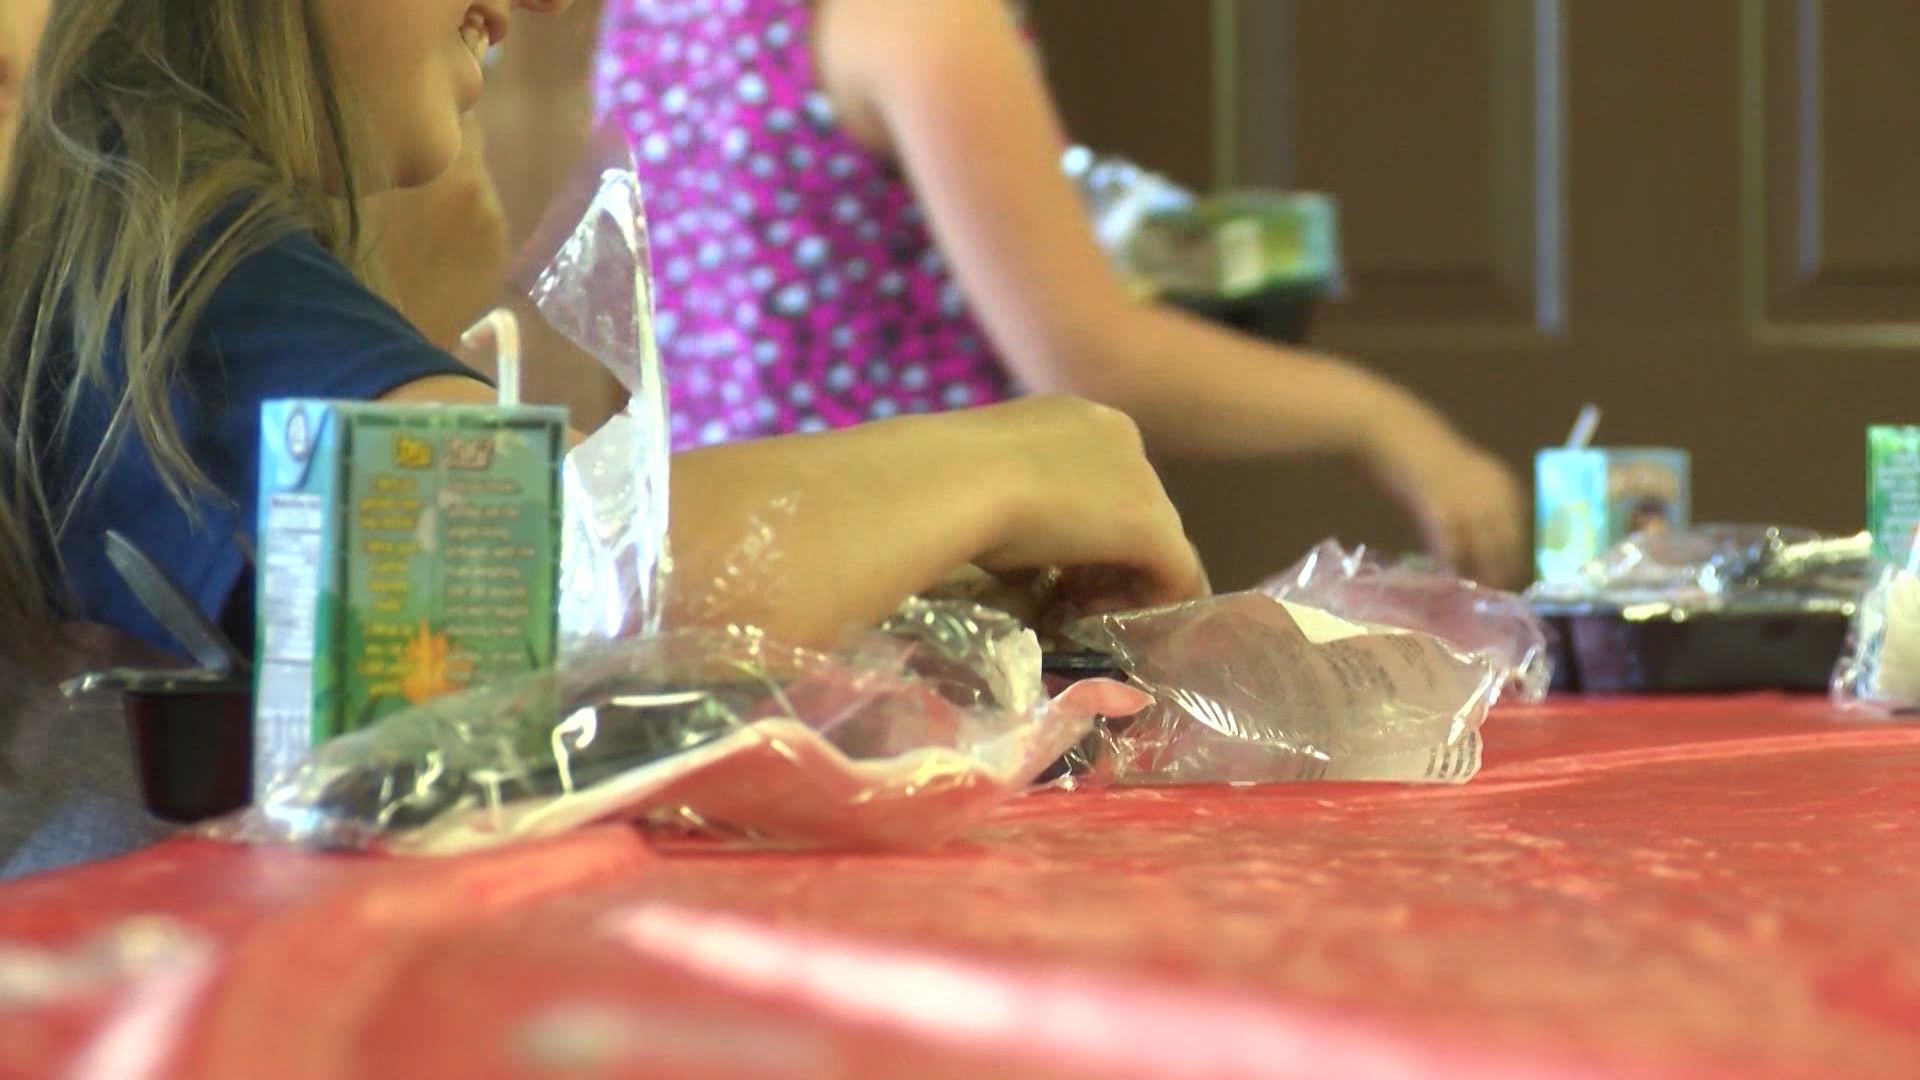 The Wichita Falls Area Food Bank is back at it again making sure our area kids aren't left hungry.